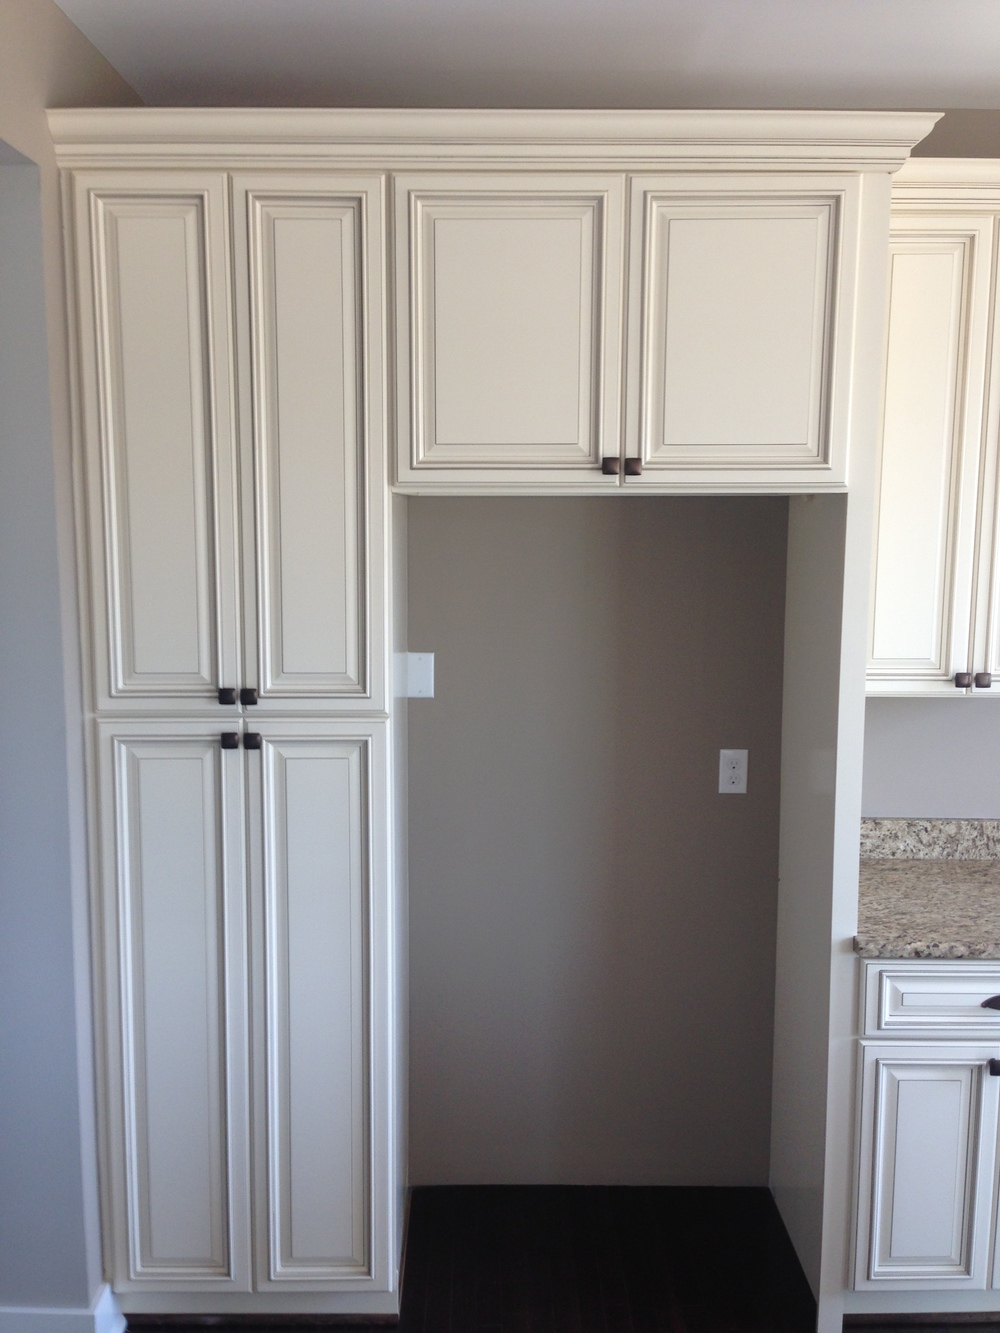 MLS.5603 Mesa Kitchen Pantry Cabinet.JPG